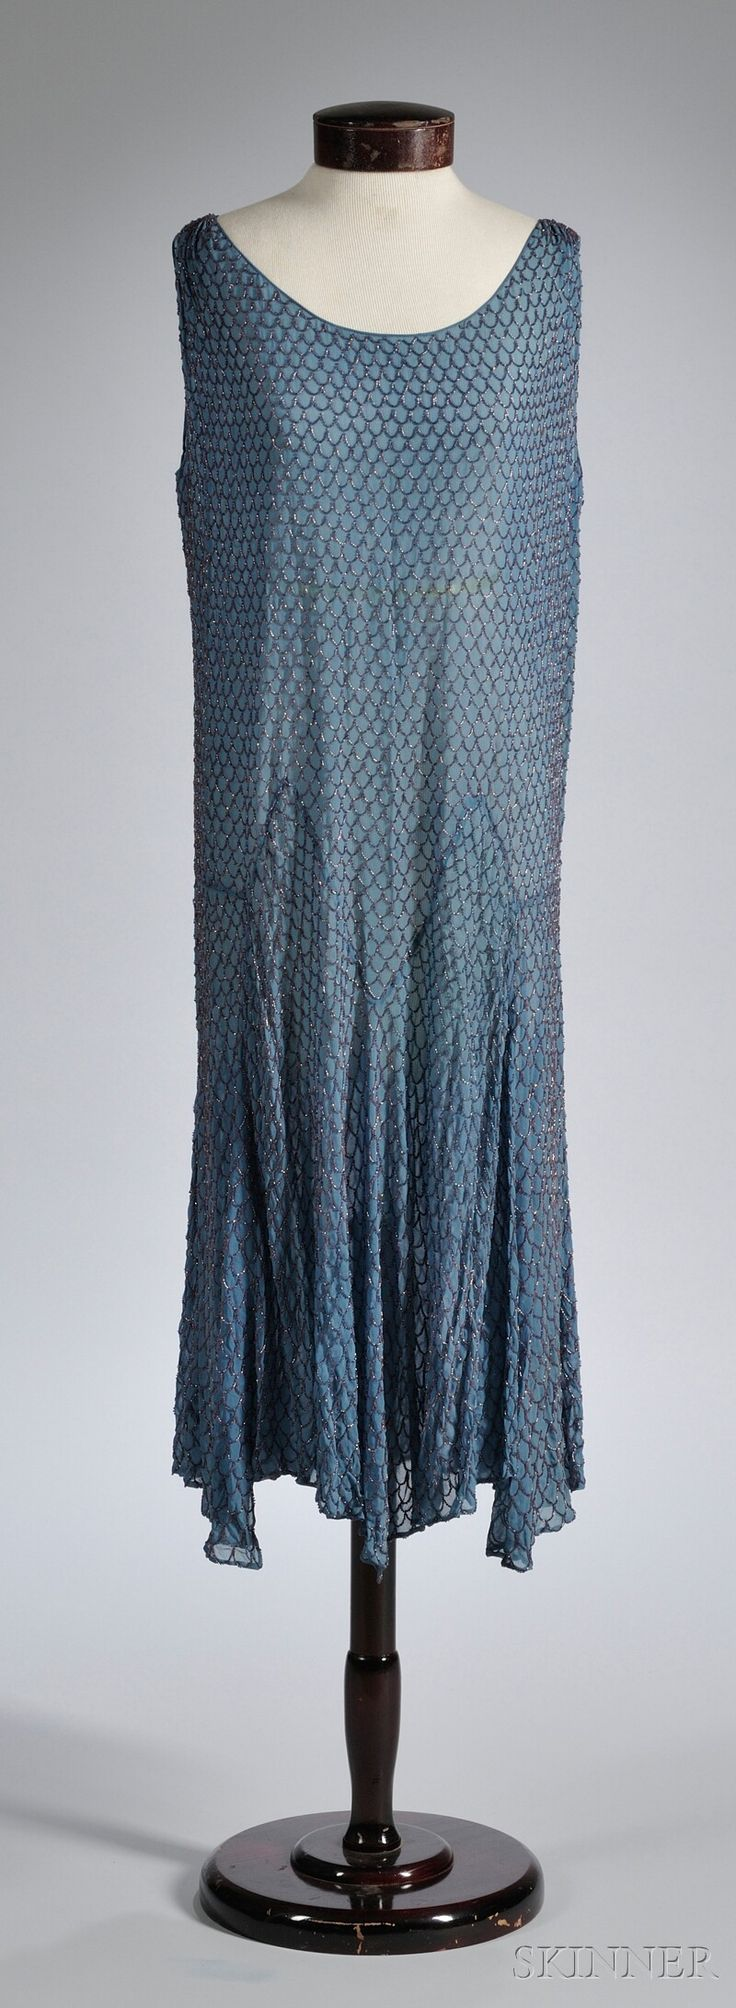 1920s fish scale patterned beaded evening dress